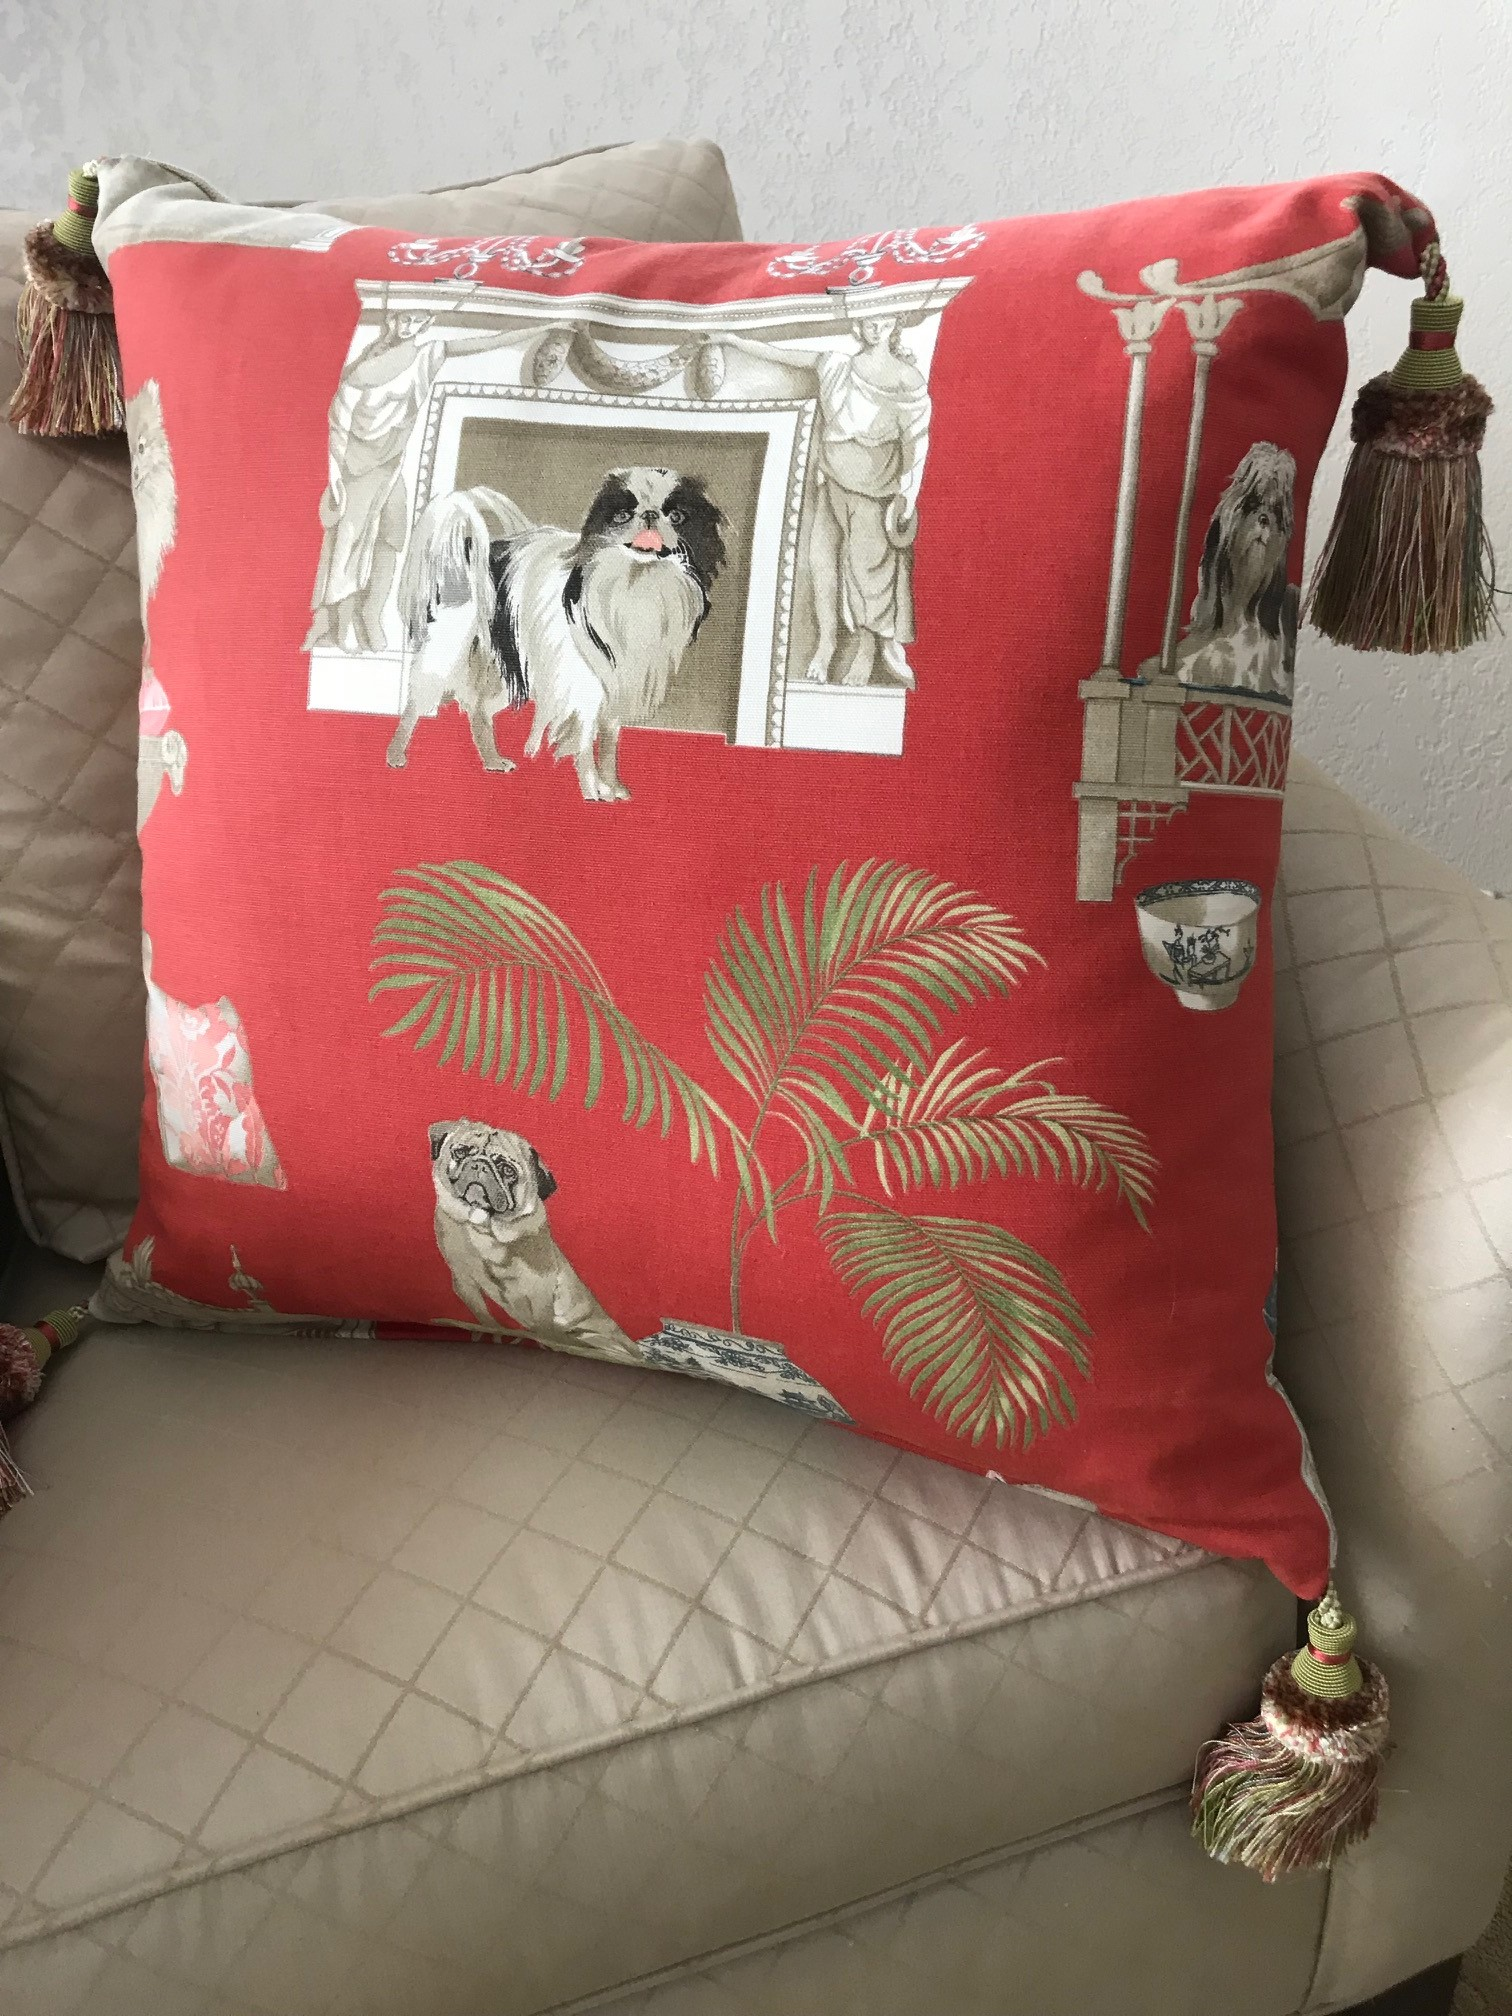 Creative Uses For Fabric Remnants And Leftover Wallpaper